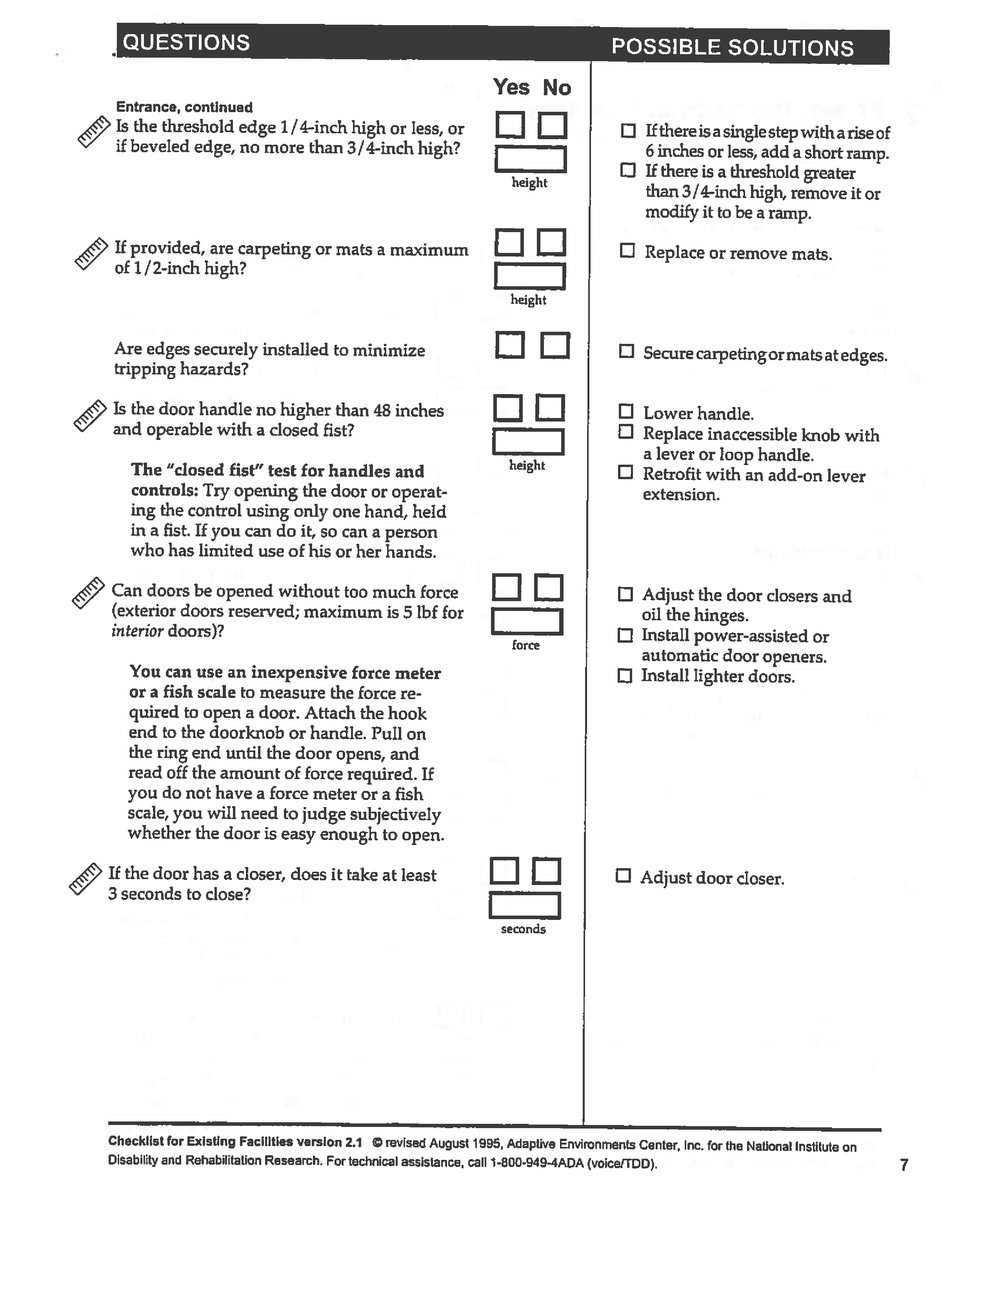 Checklist for Existing Facilities-page-6.jpg